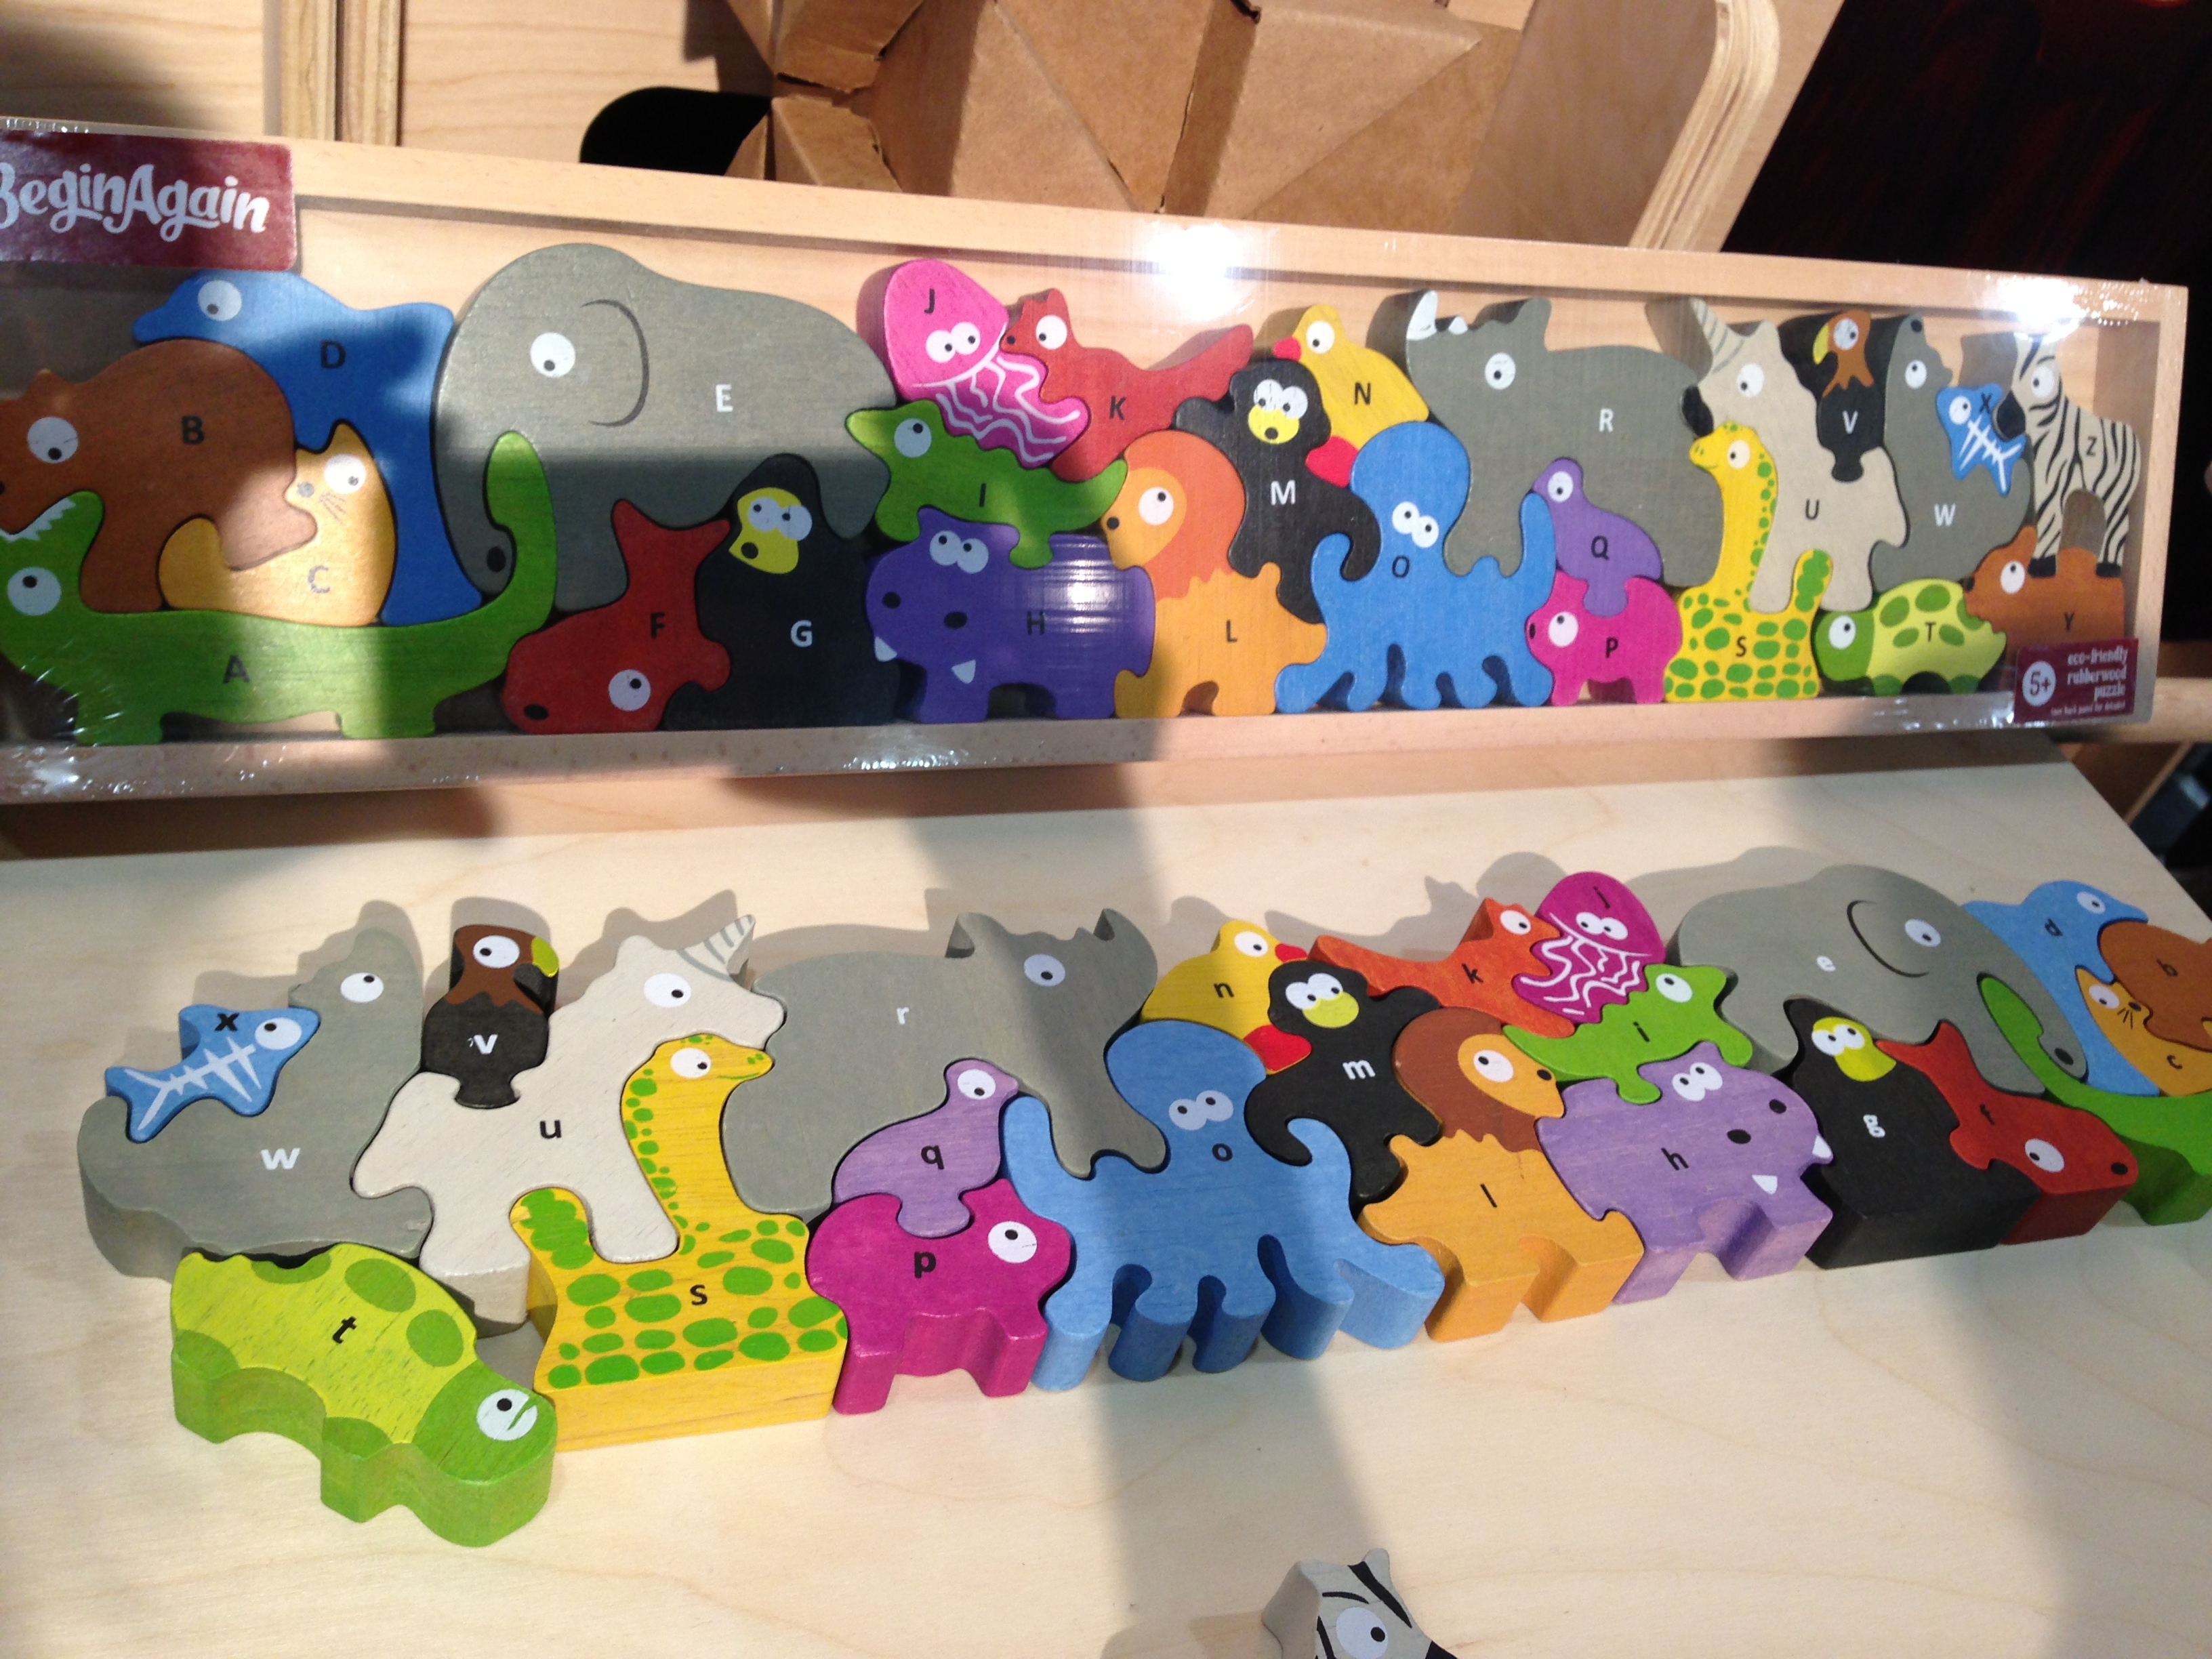 Begin Again Animal Parade Puzzle